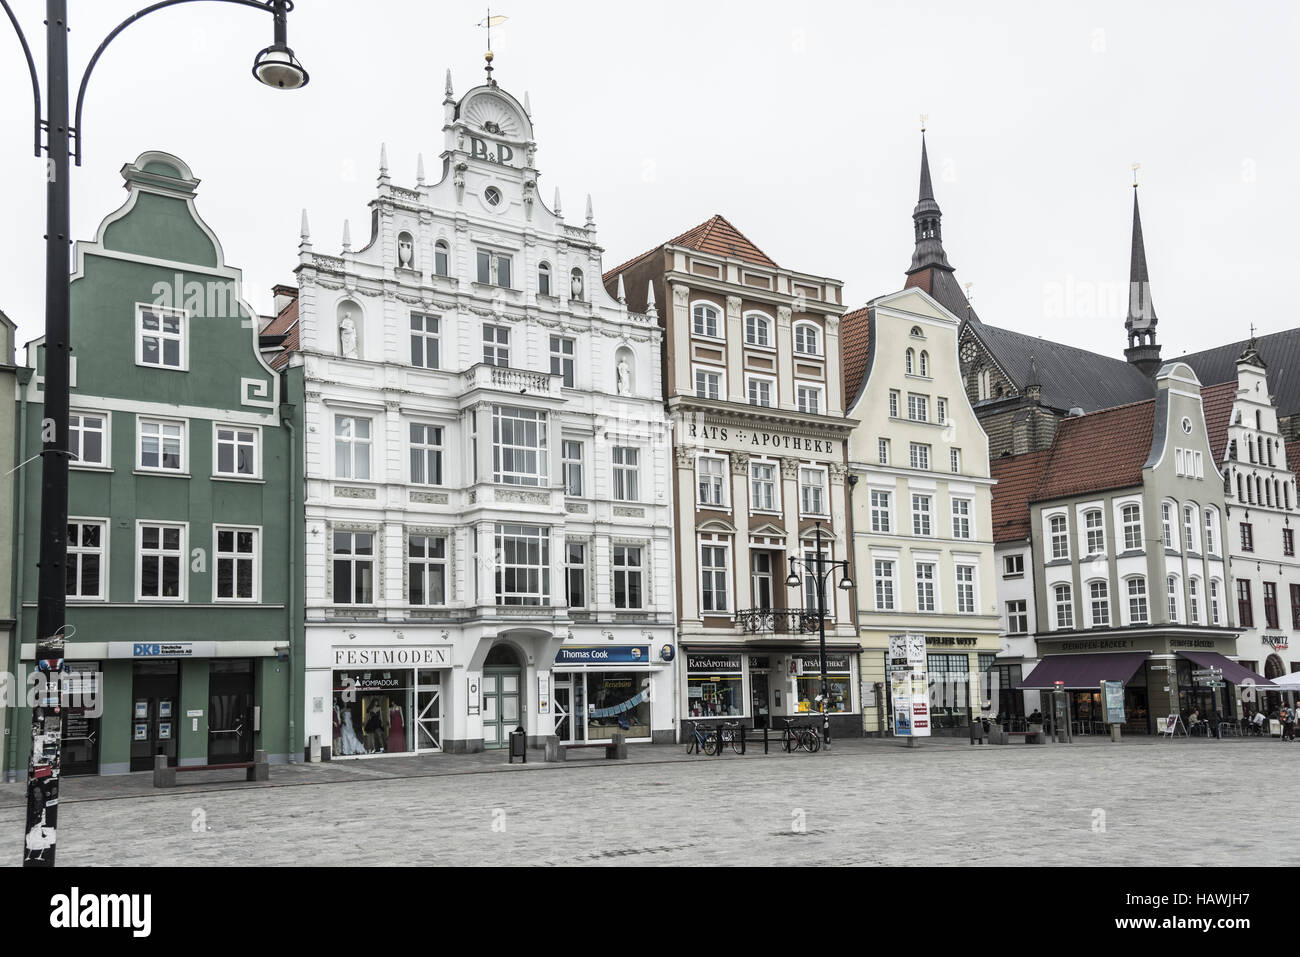 New market, Rostock Stock Photo